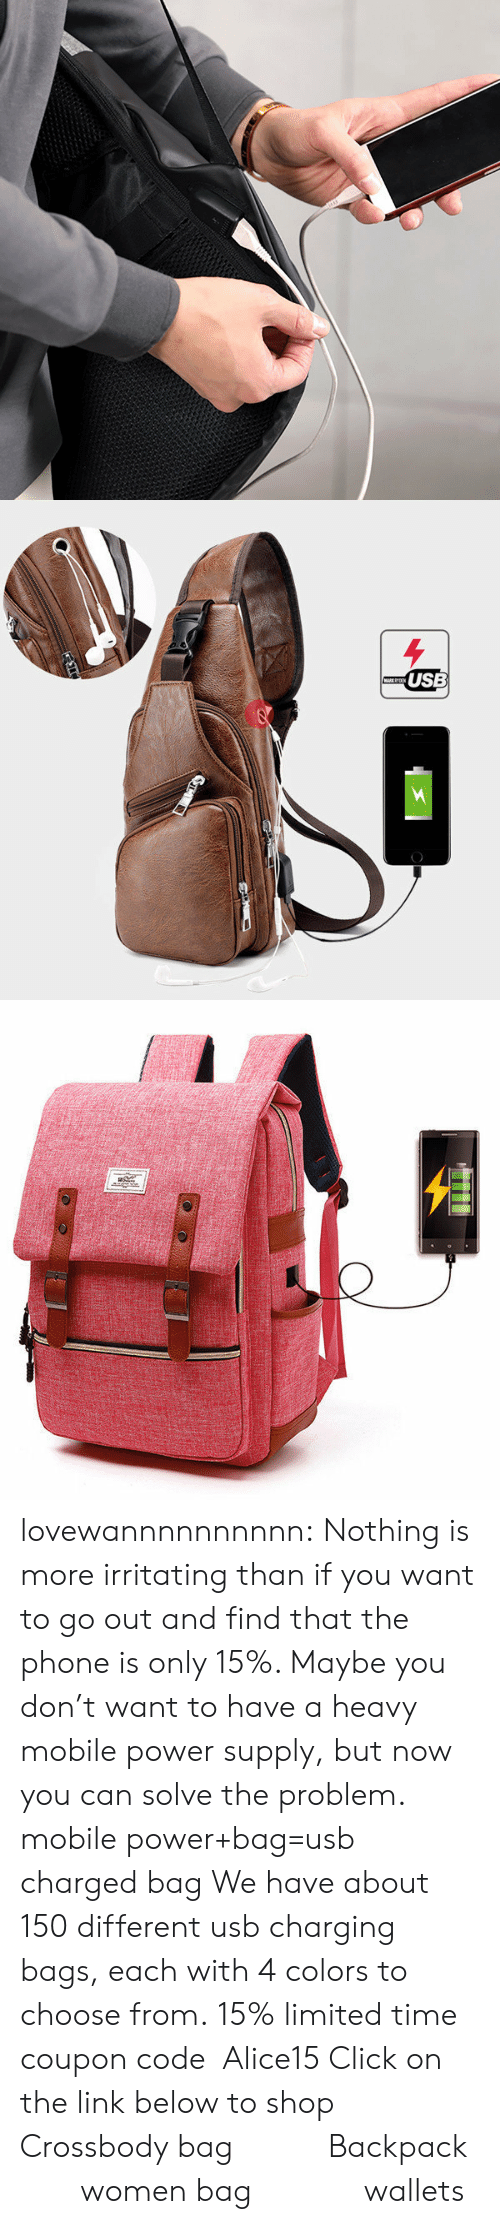 power supply: USB lovewannnnnnnnnn: Nothing is more irritating than if you want to go out and find that the phone is only 15%. Maybe you don't want to have a heavy mobile power supply, but now you can solve the problem. mobile power+bag=usb charged bag We have about 150 different usb charging bags, each with 4 colors to choose from. 15% limited time coupon code:Alice15 Click on the link below to shop Crossbody bag           Backpack         women bag             wallets